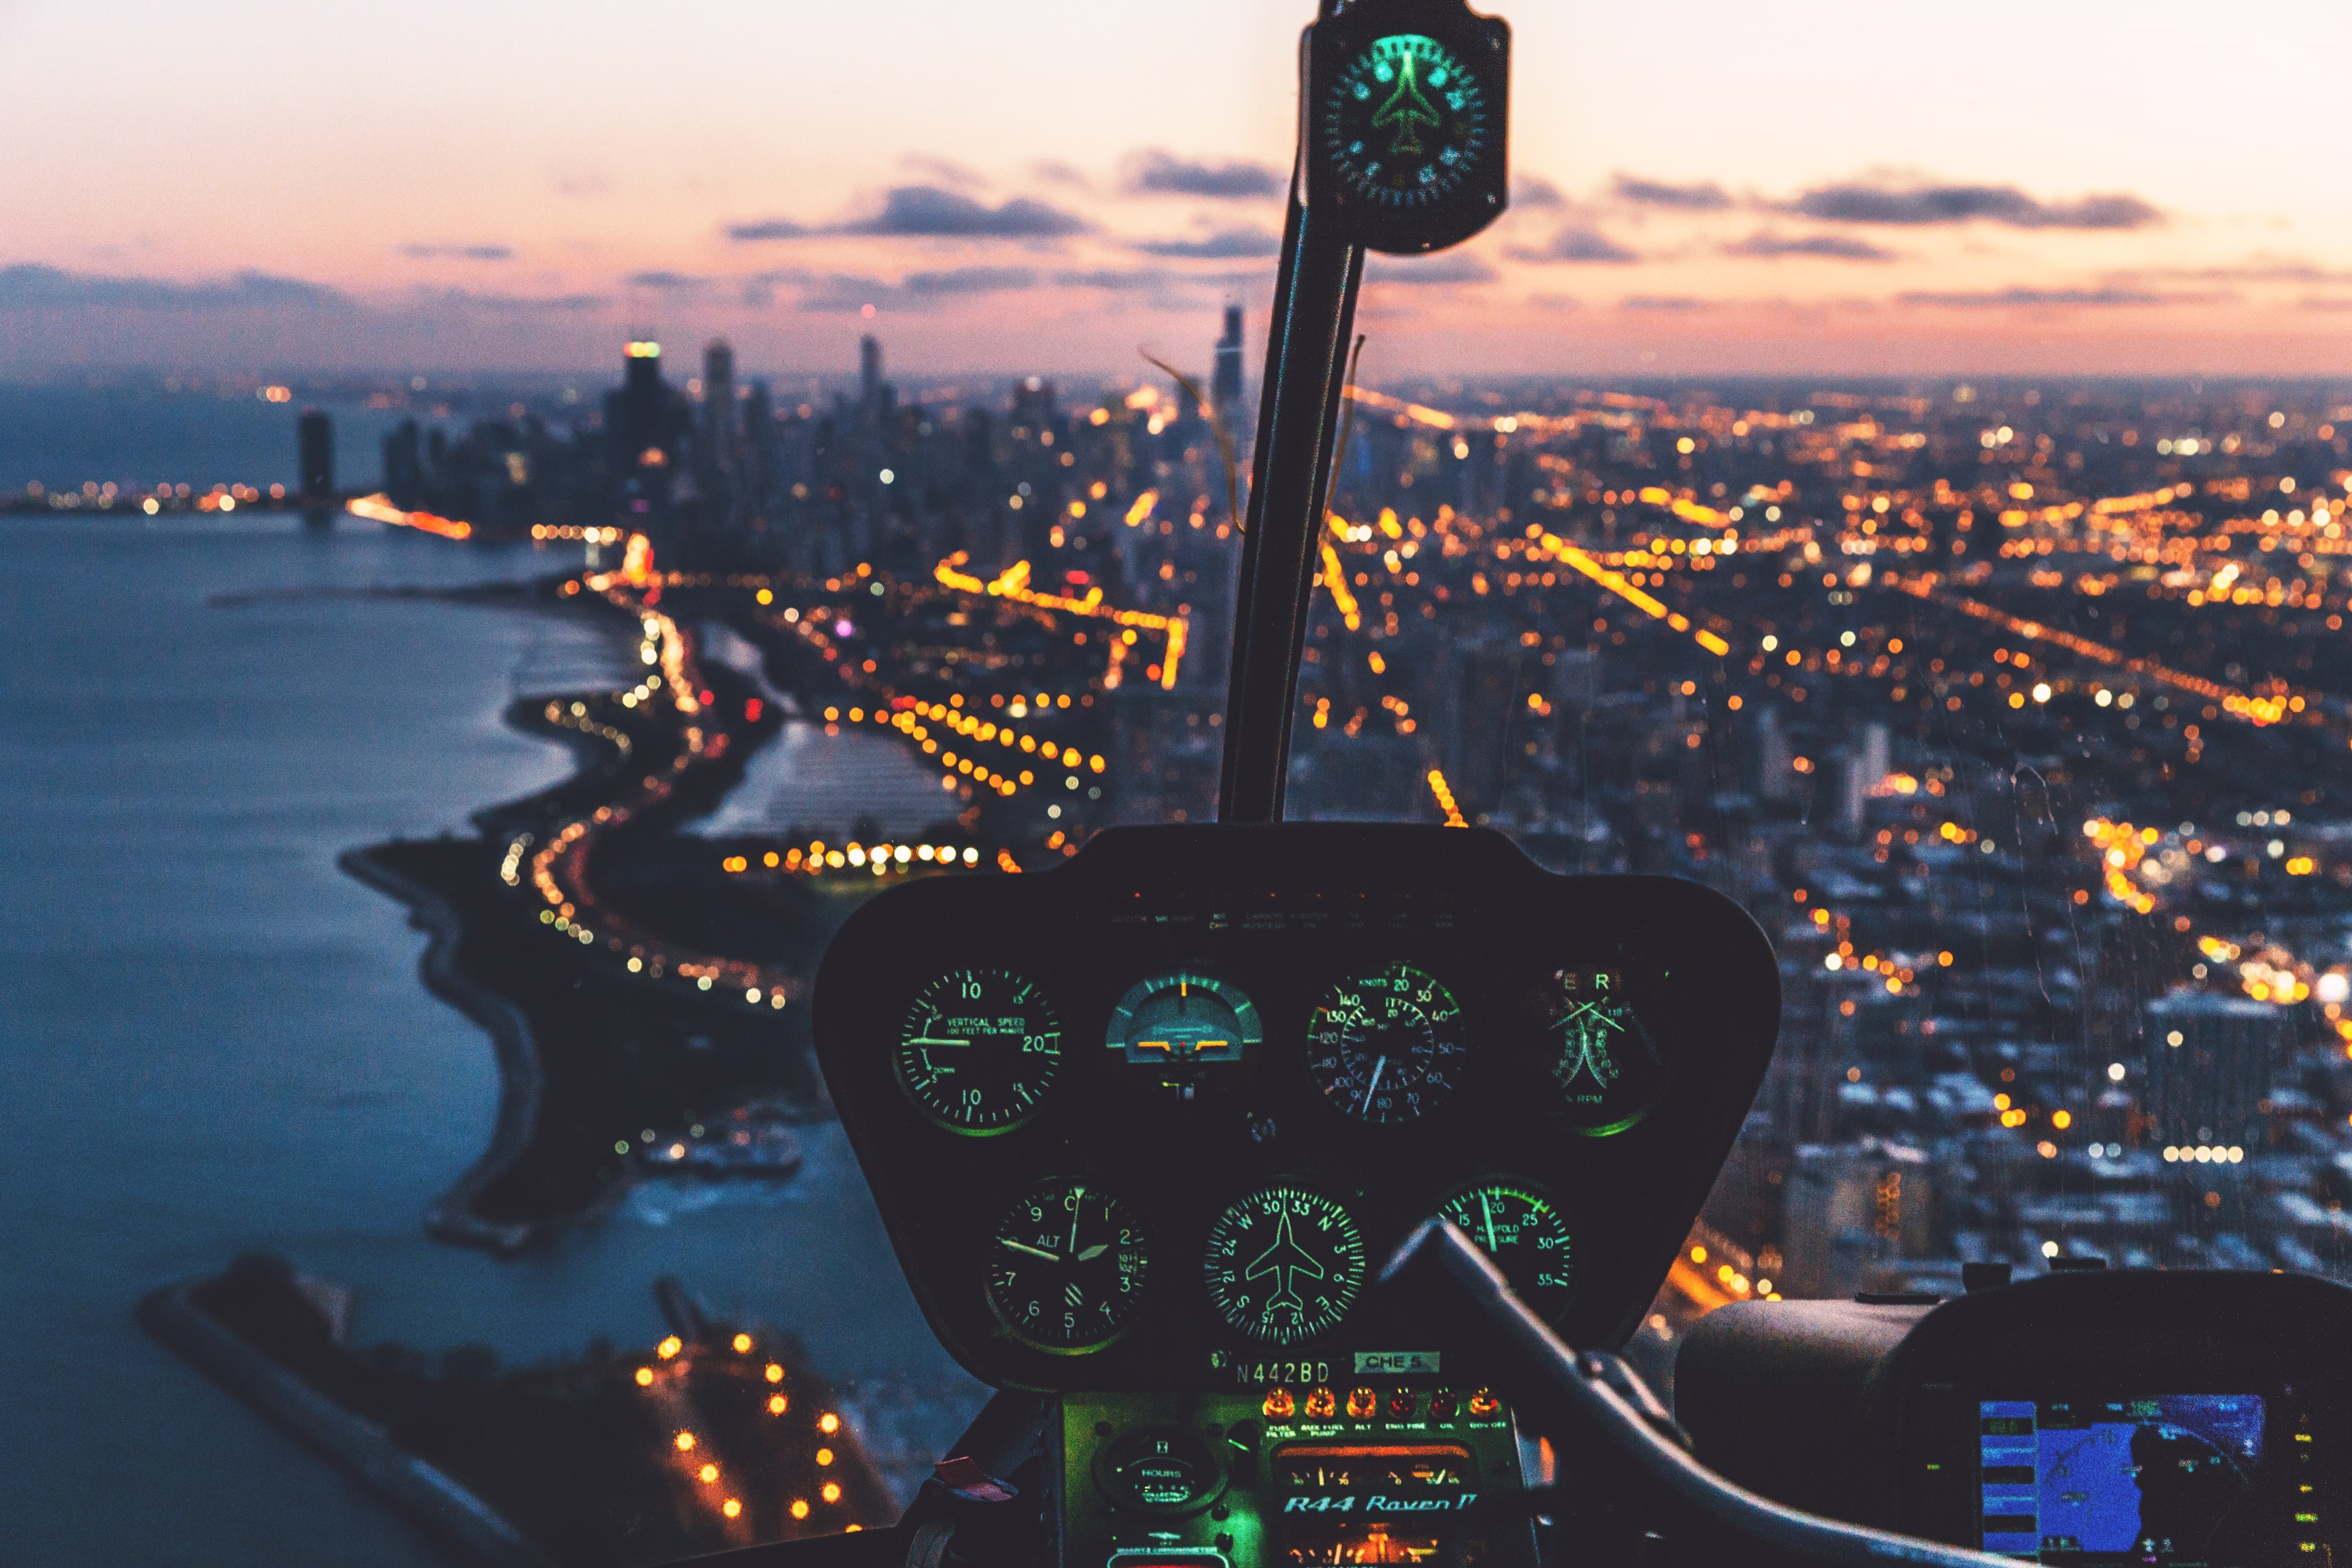 aerial view photography of helicopter cockpit and cityscape by water